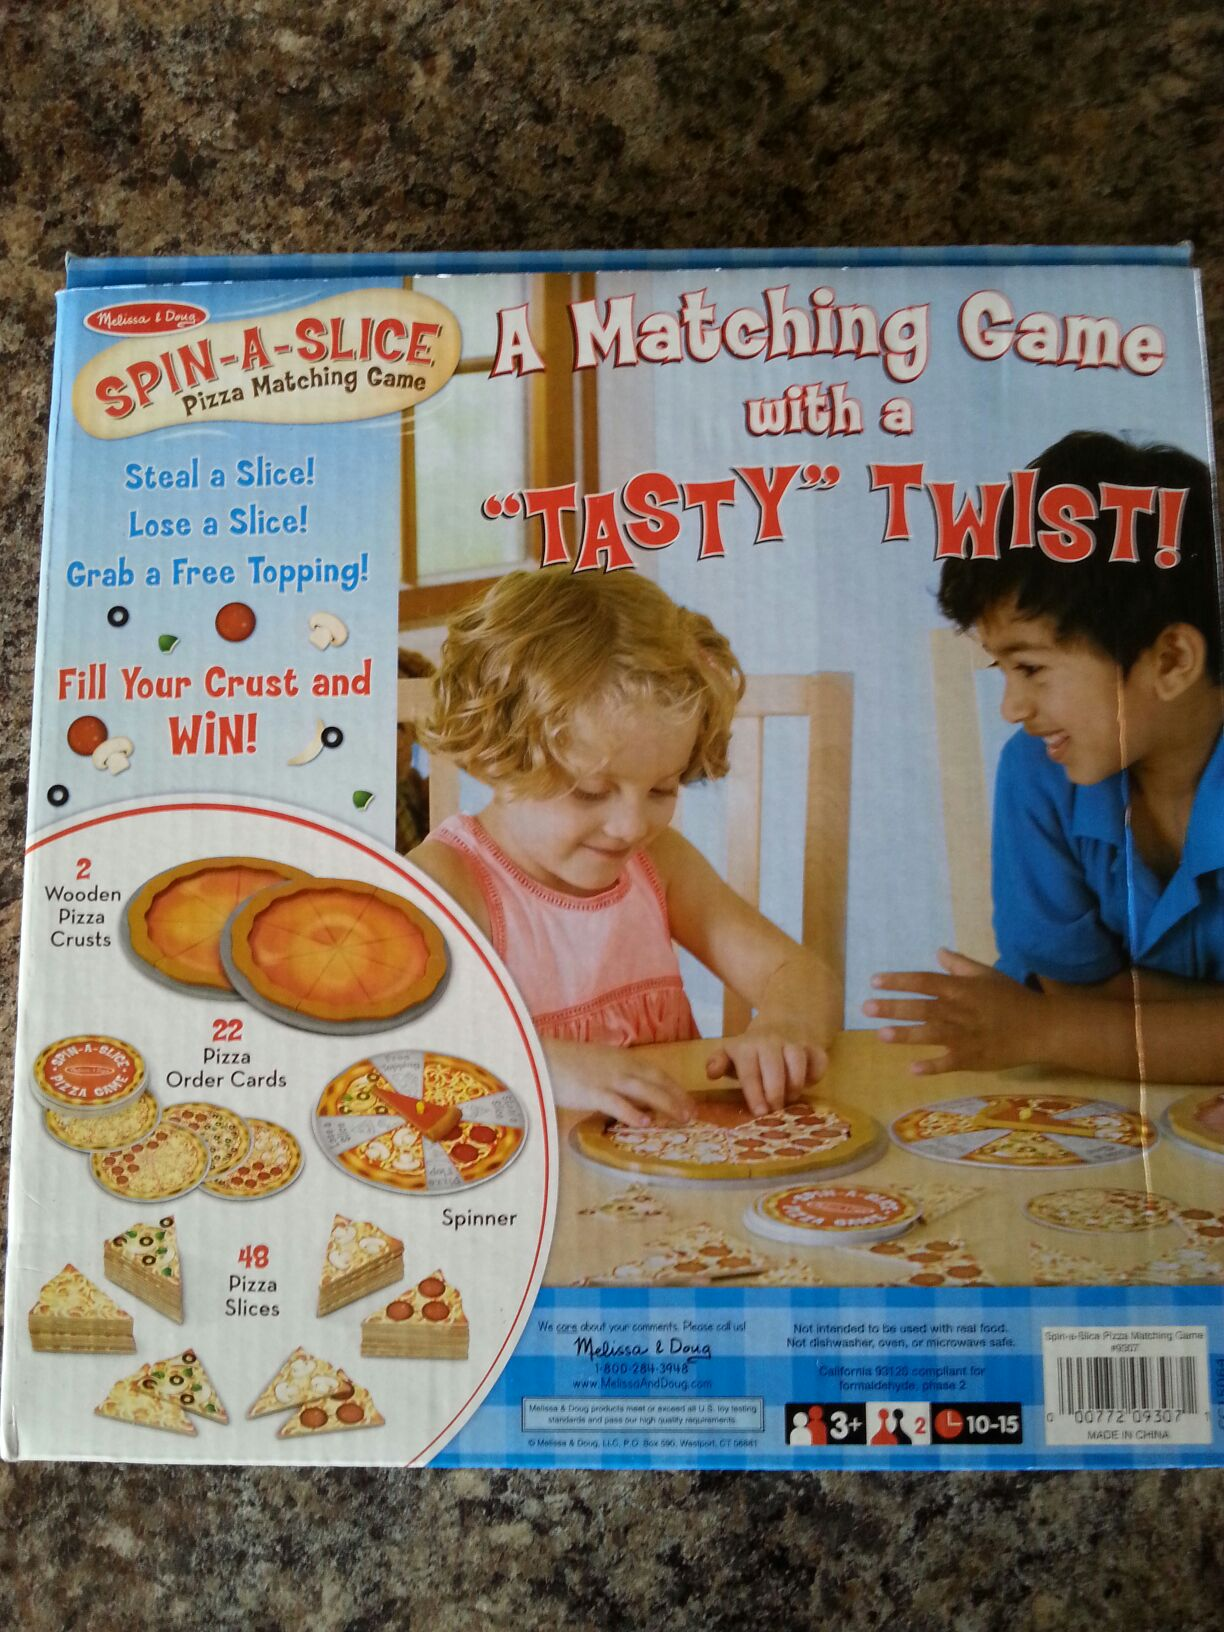 Spin A Slice Board Game - melissa and doug back image (back cover, second image)